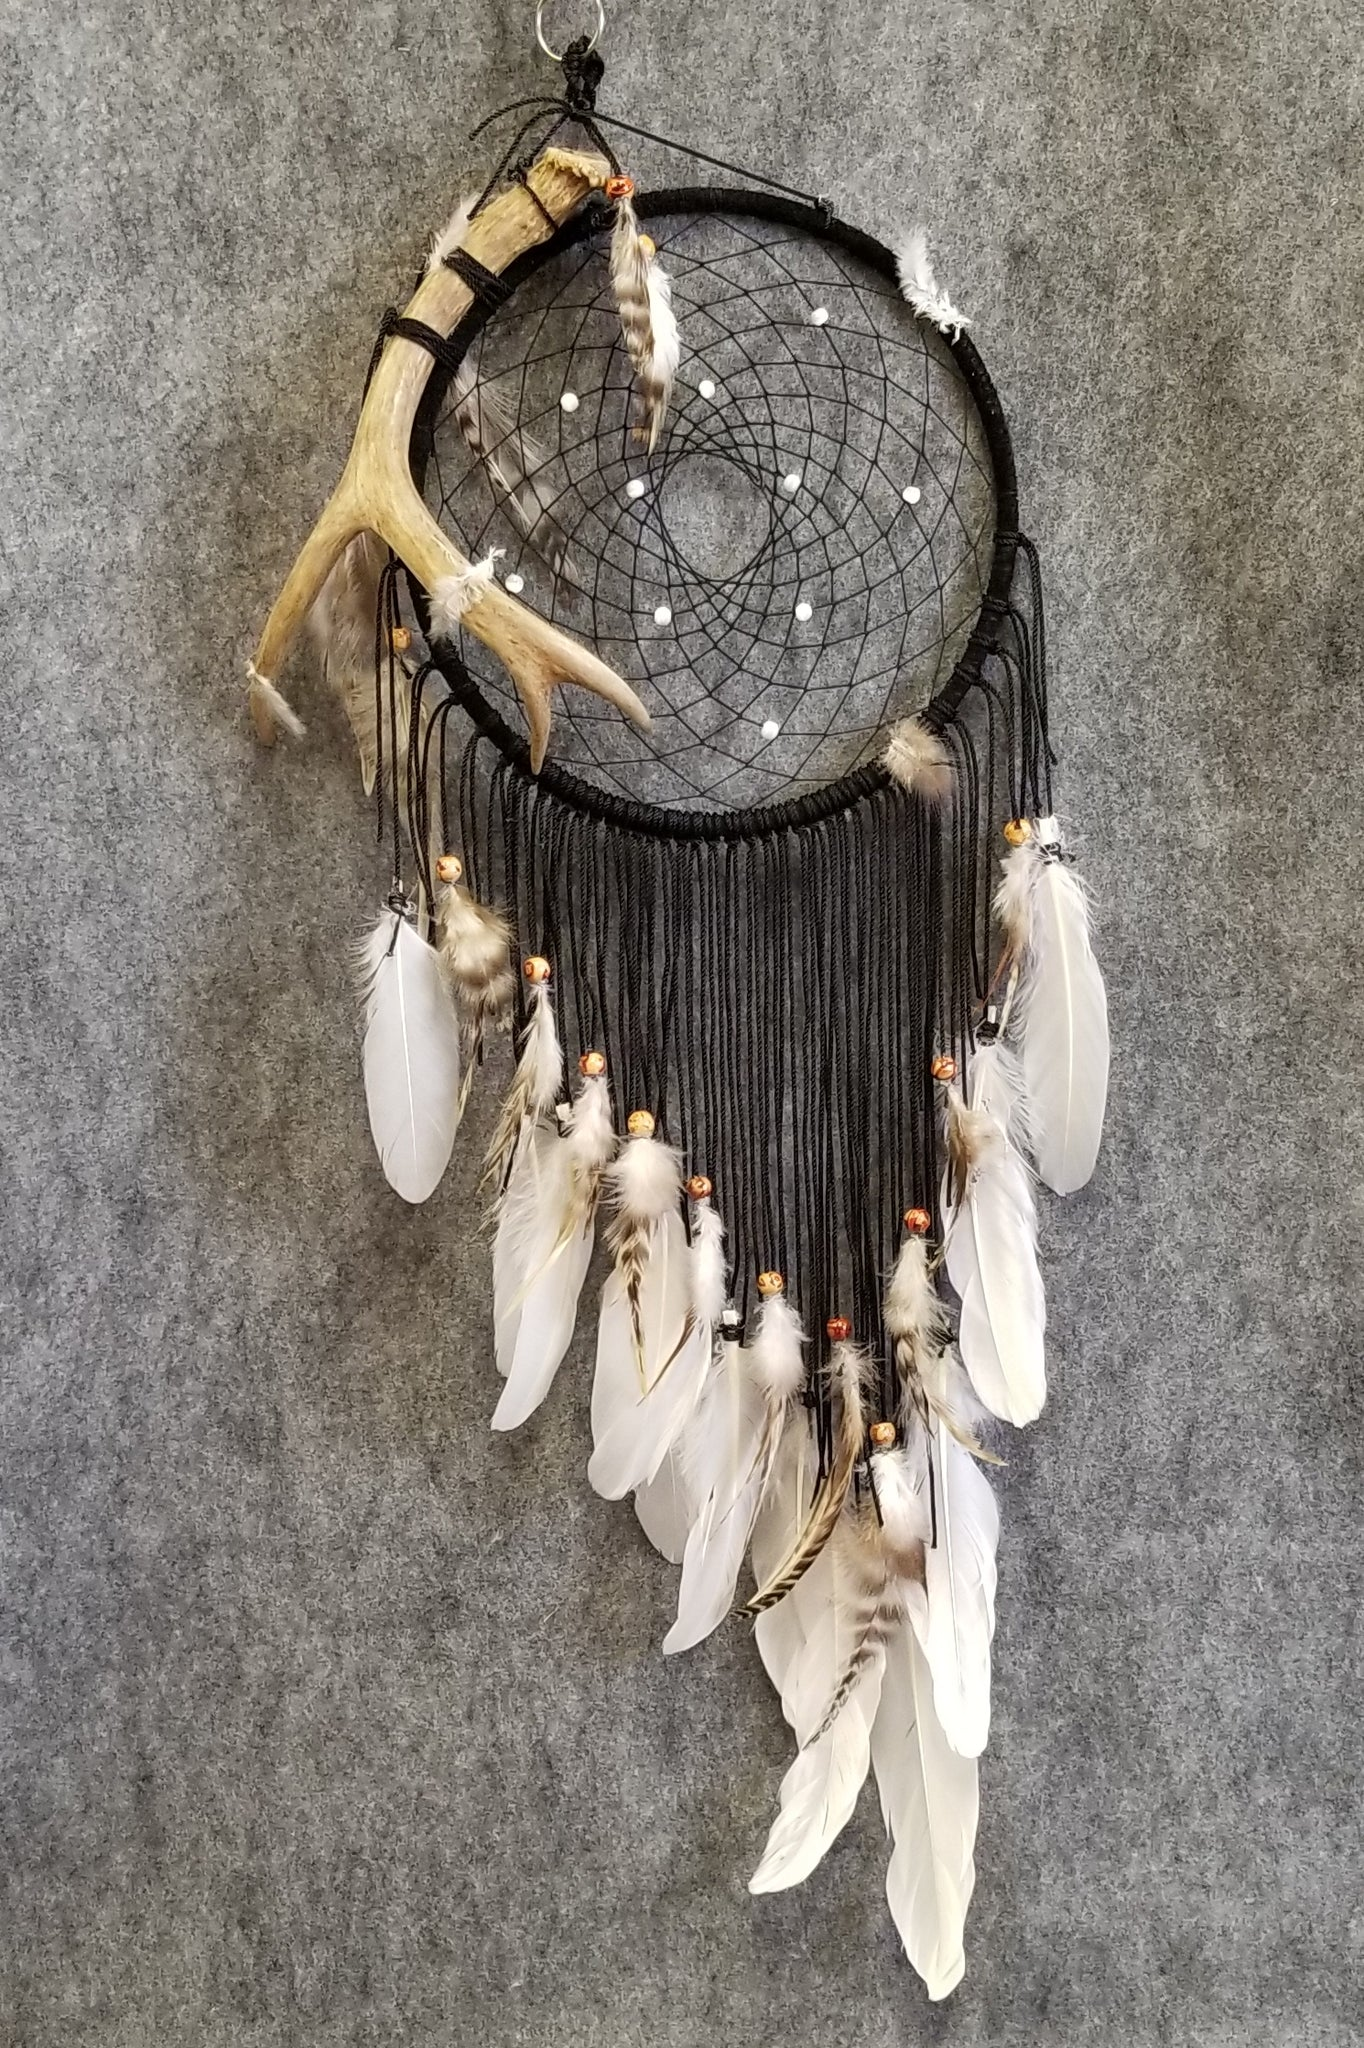 DC192 Dream Catcher - Deer Antler - Trinkets & Things Handmade with Aloha